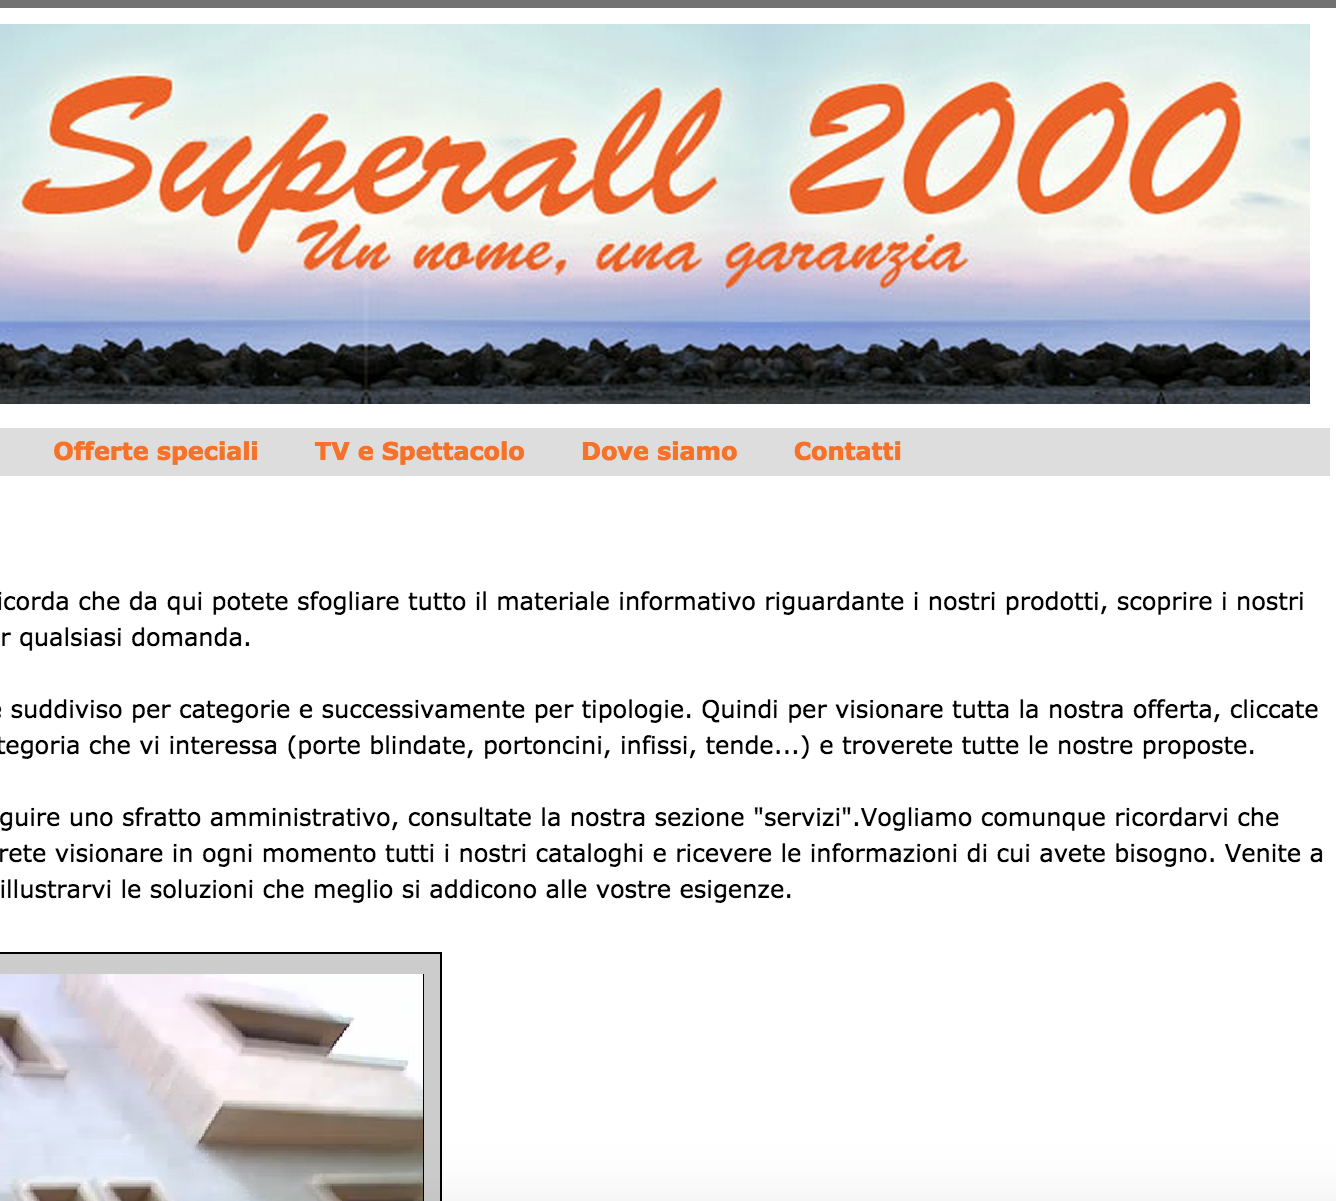 Superall 2000